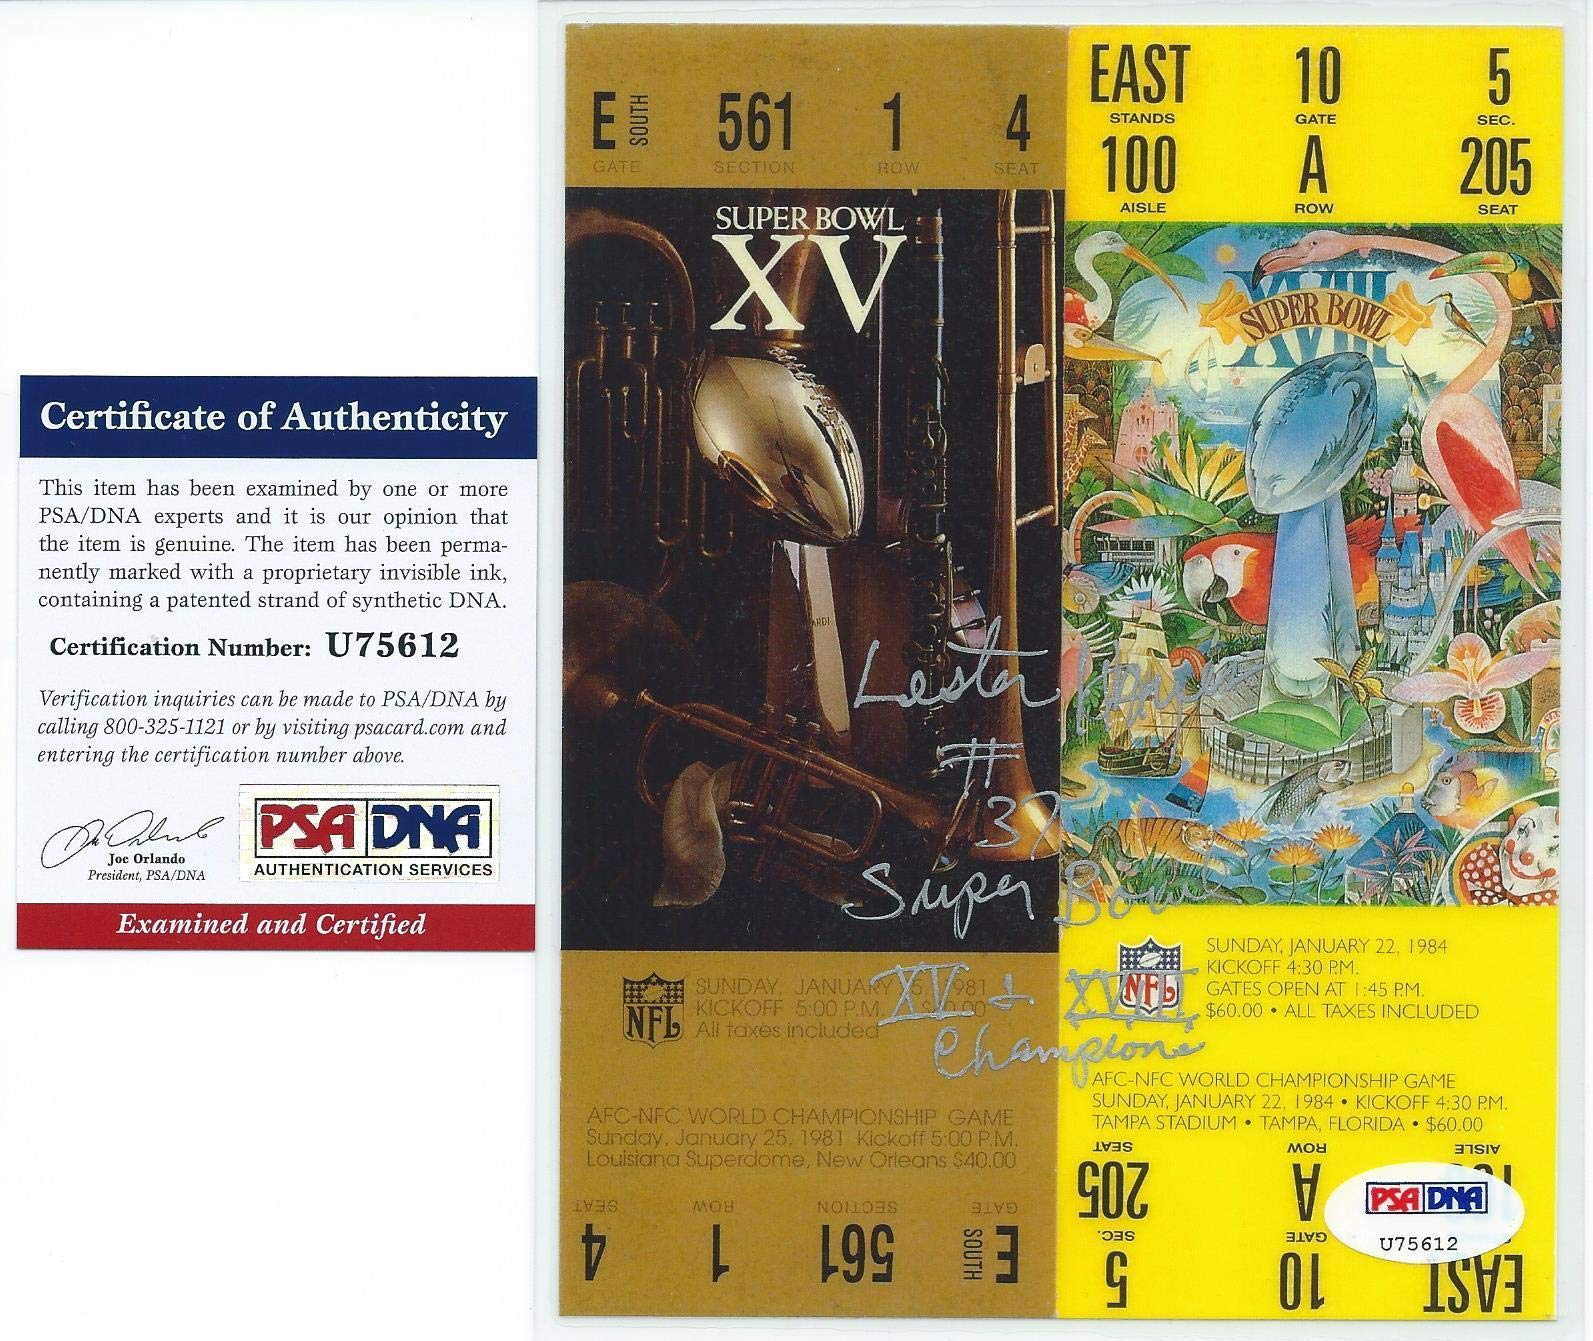 Lester Hayes Oakland Raiders Autographed Signed Super Bowl Tickets Autographed Signed PSA/DNA Authentic